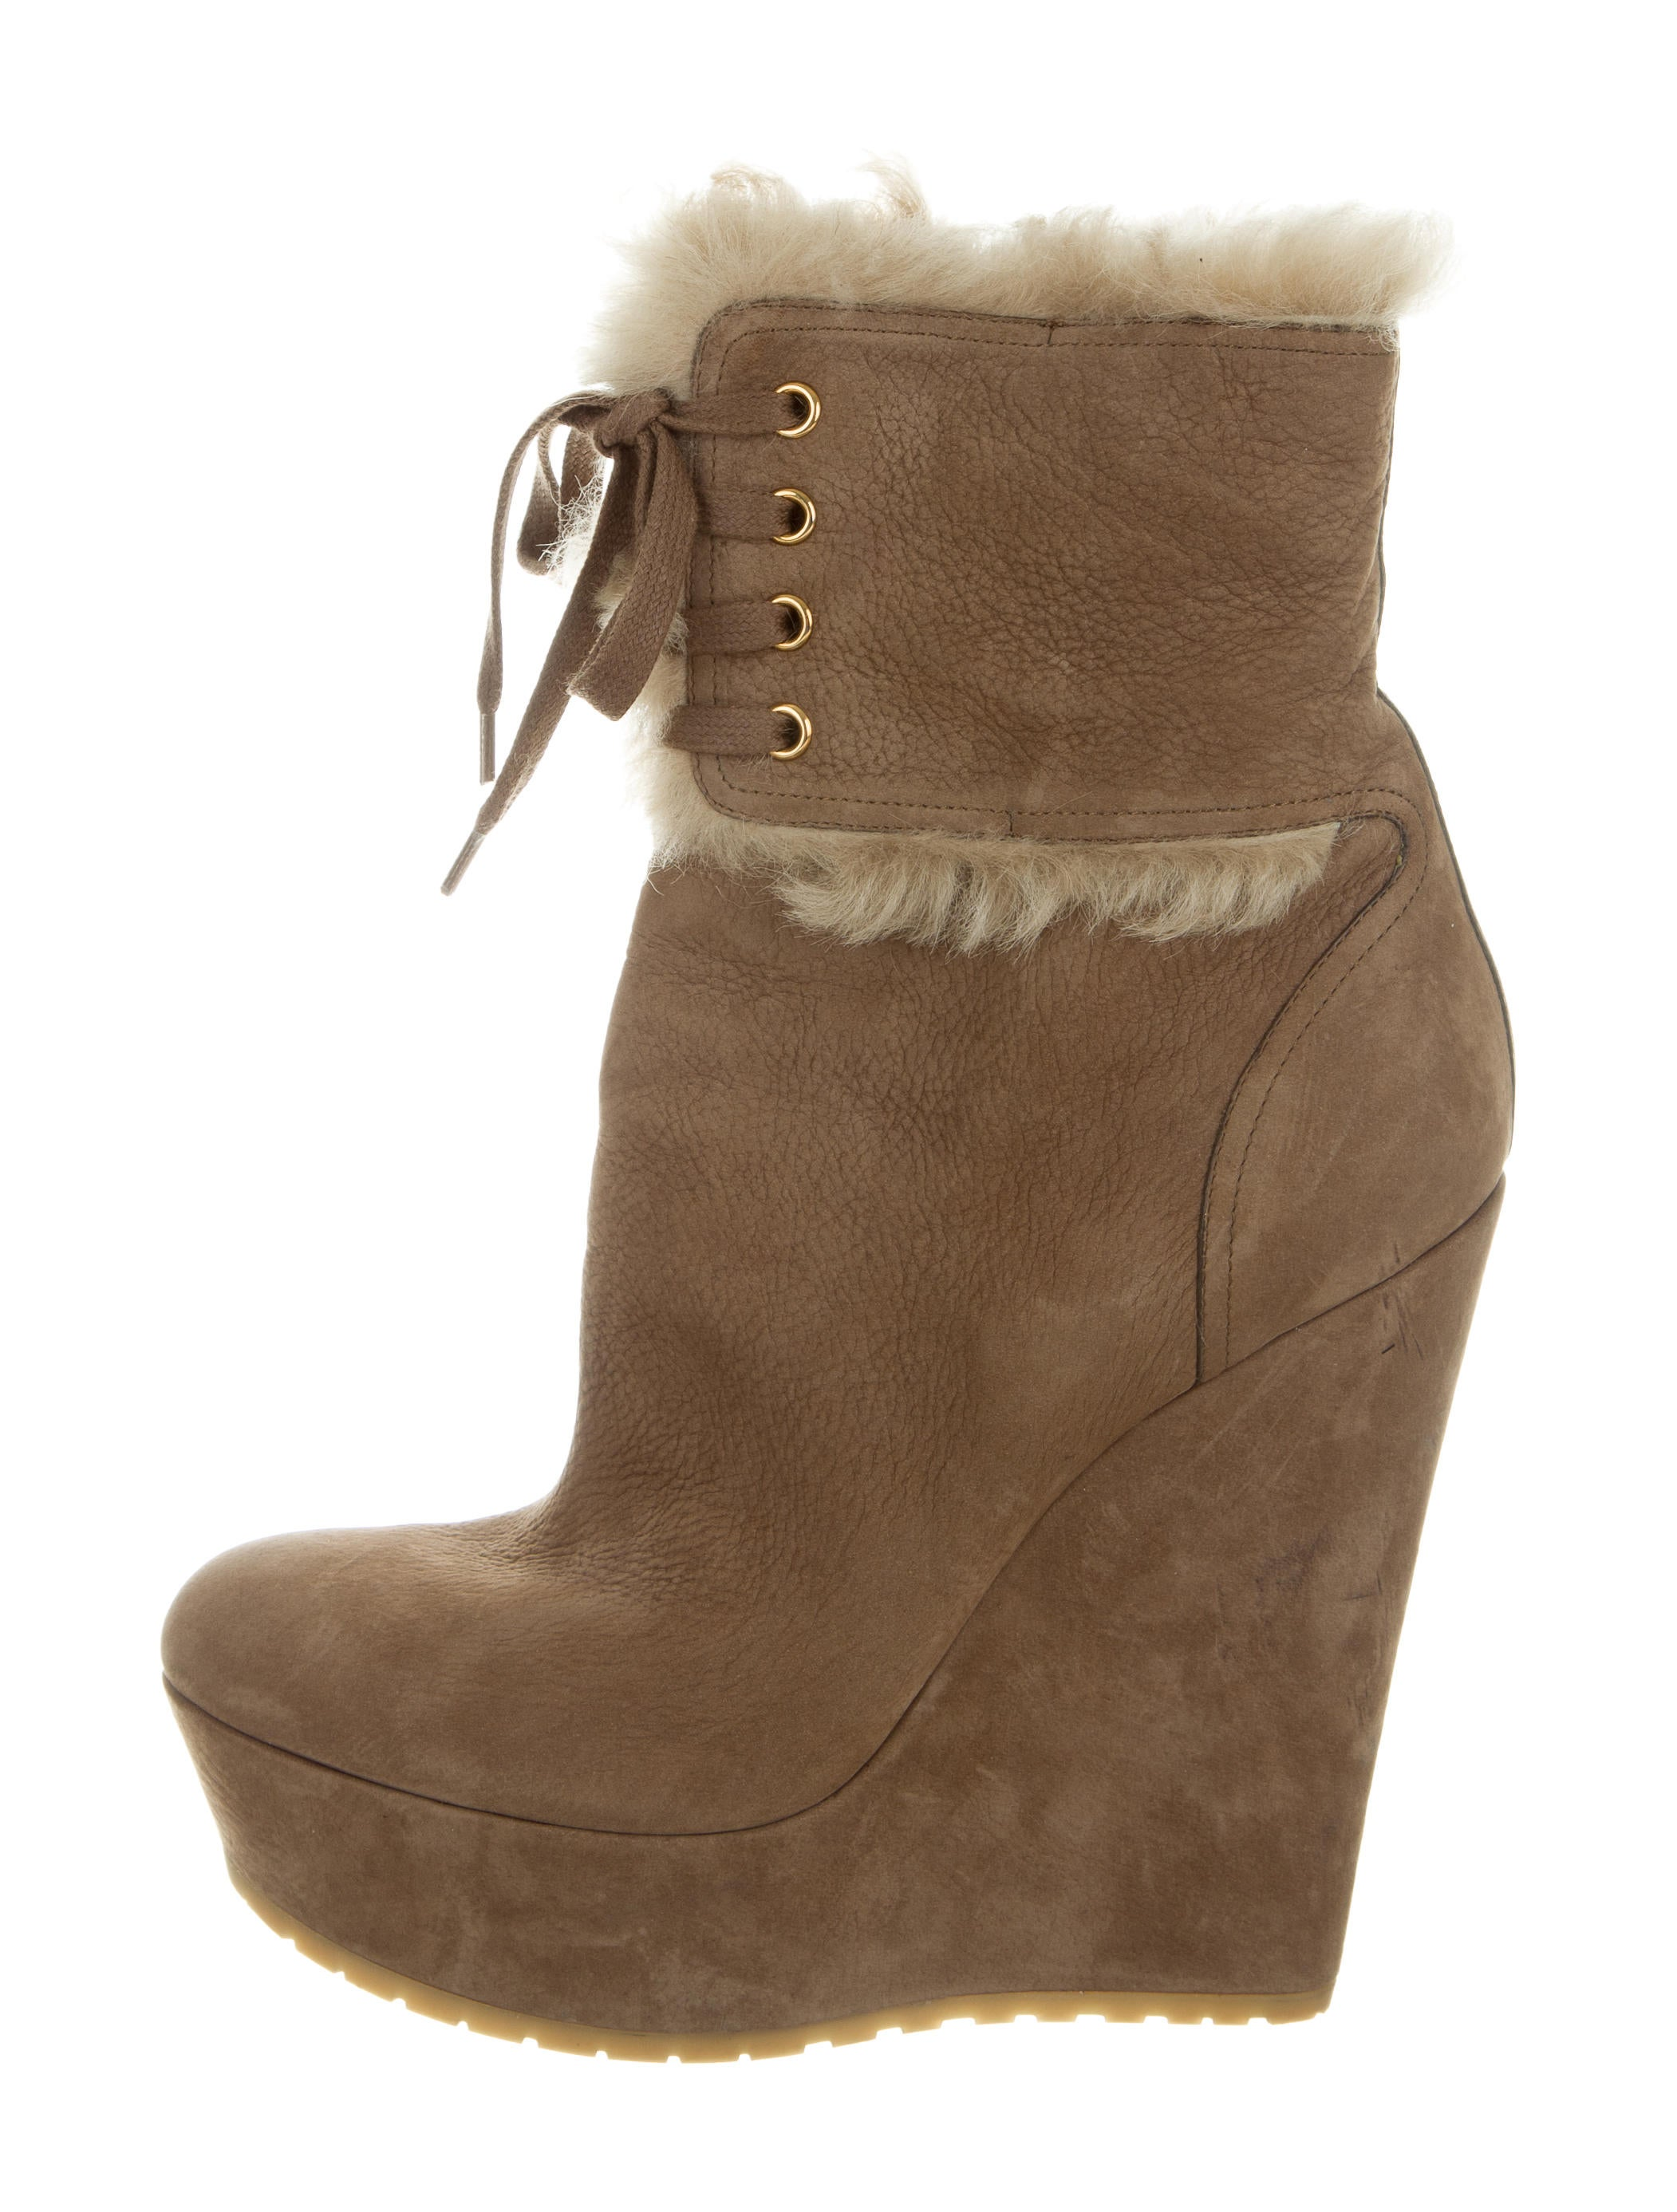 gucci suede wedge ankle boots shoes guc156321 the